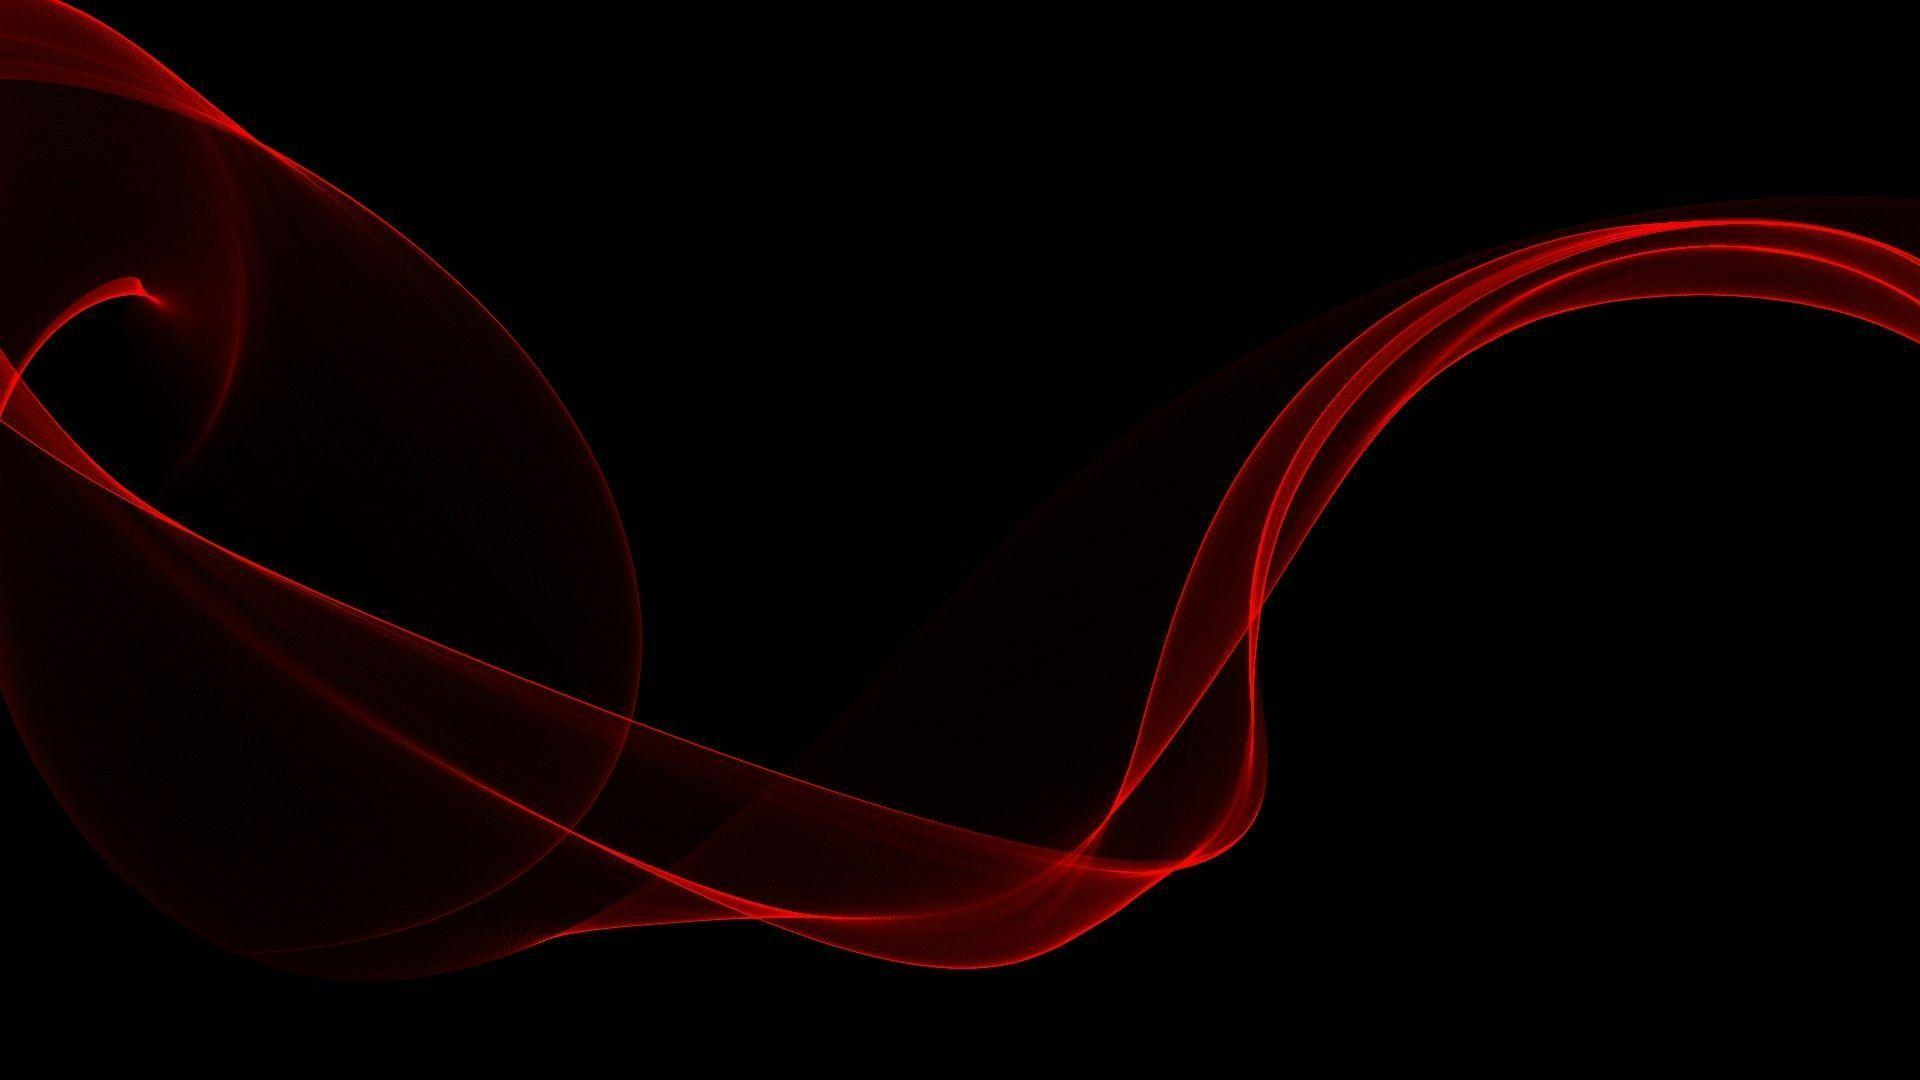 Images Of Music Red Wallpaper 1920x1080